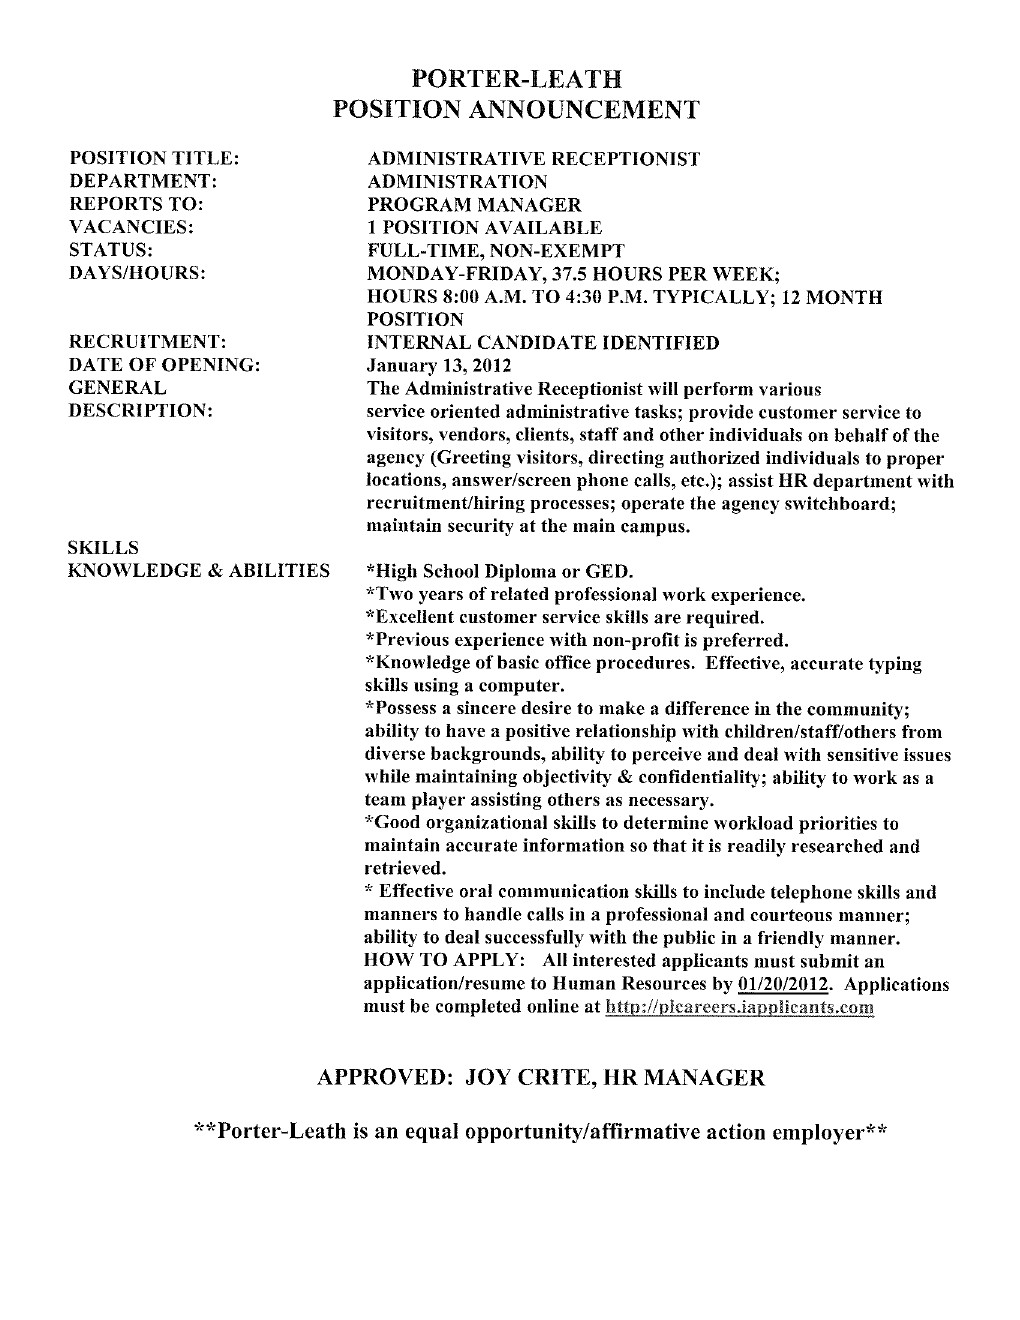 Cover Letter For Receptionist In Medical Field